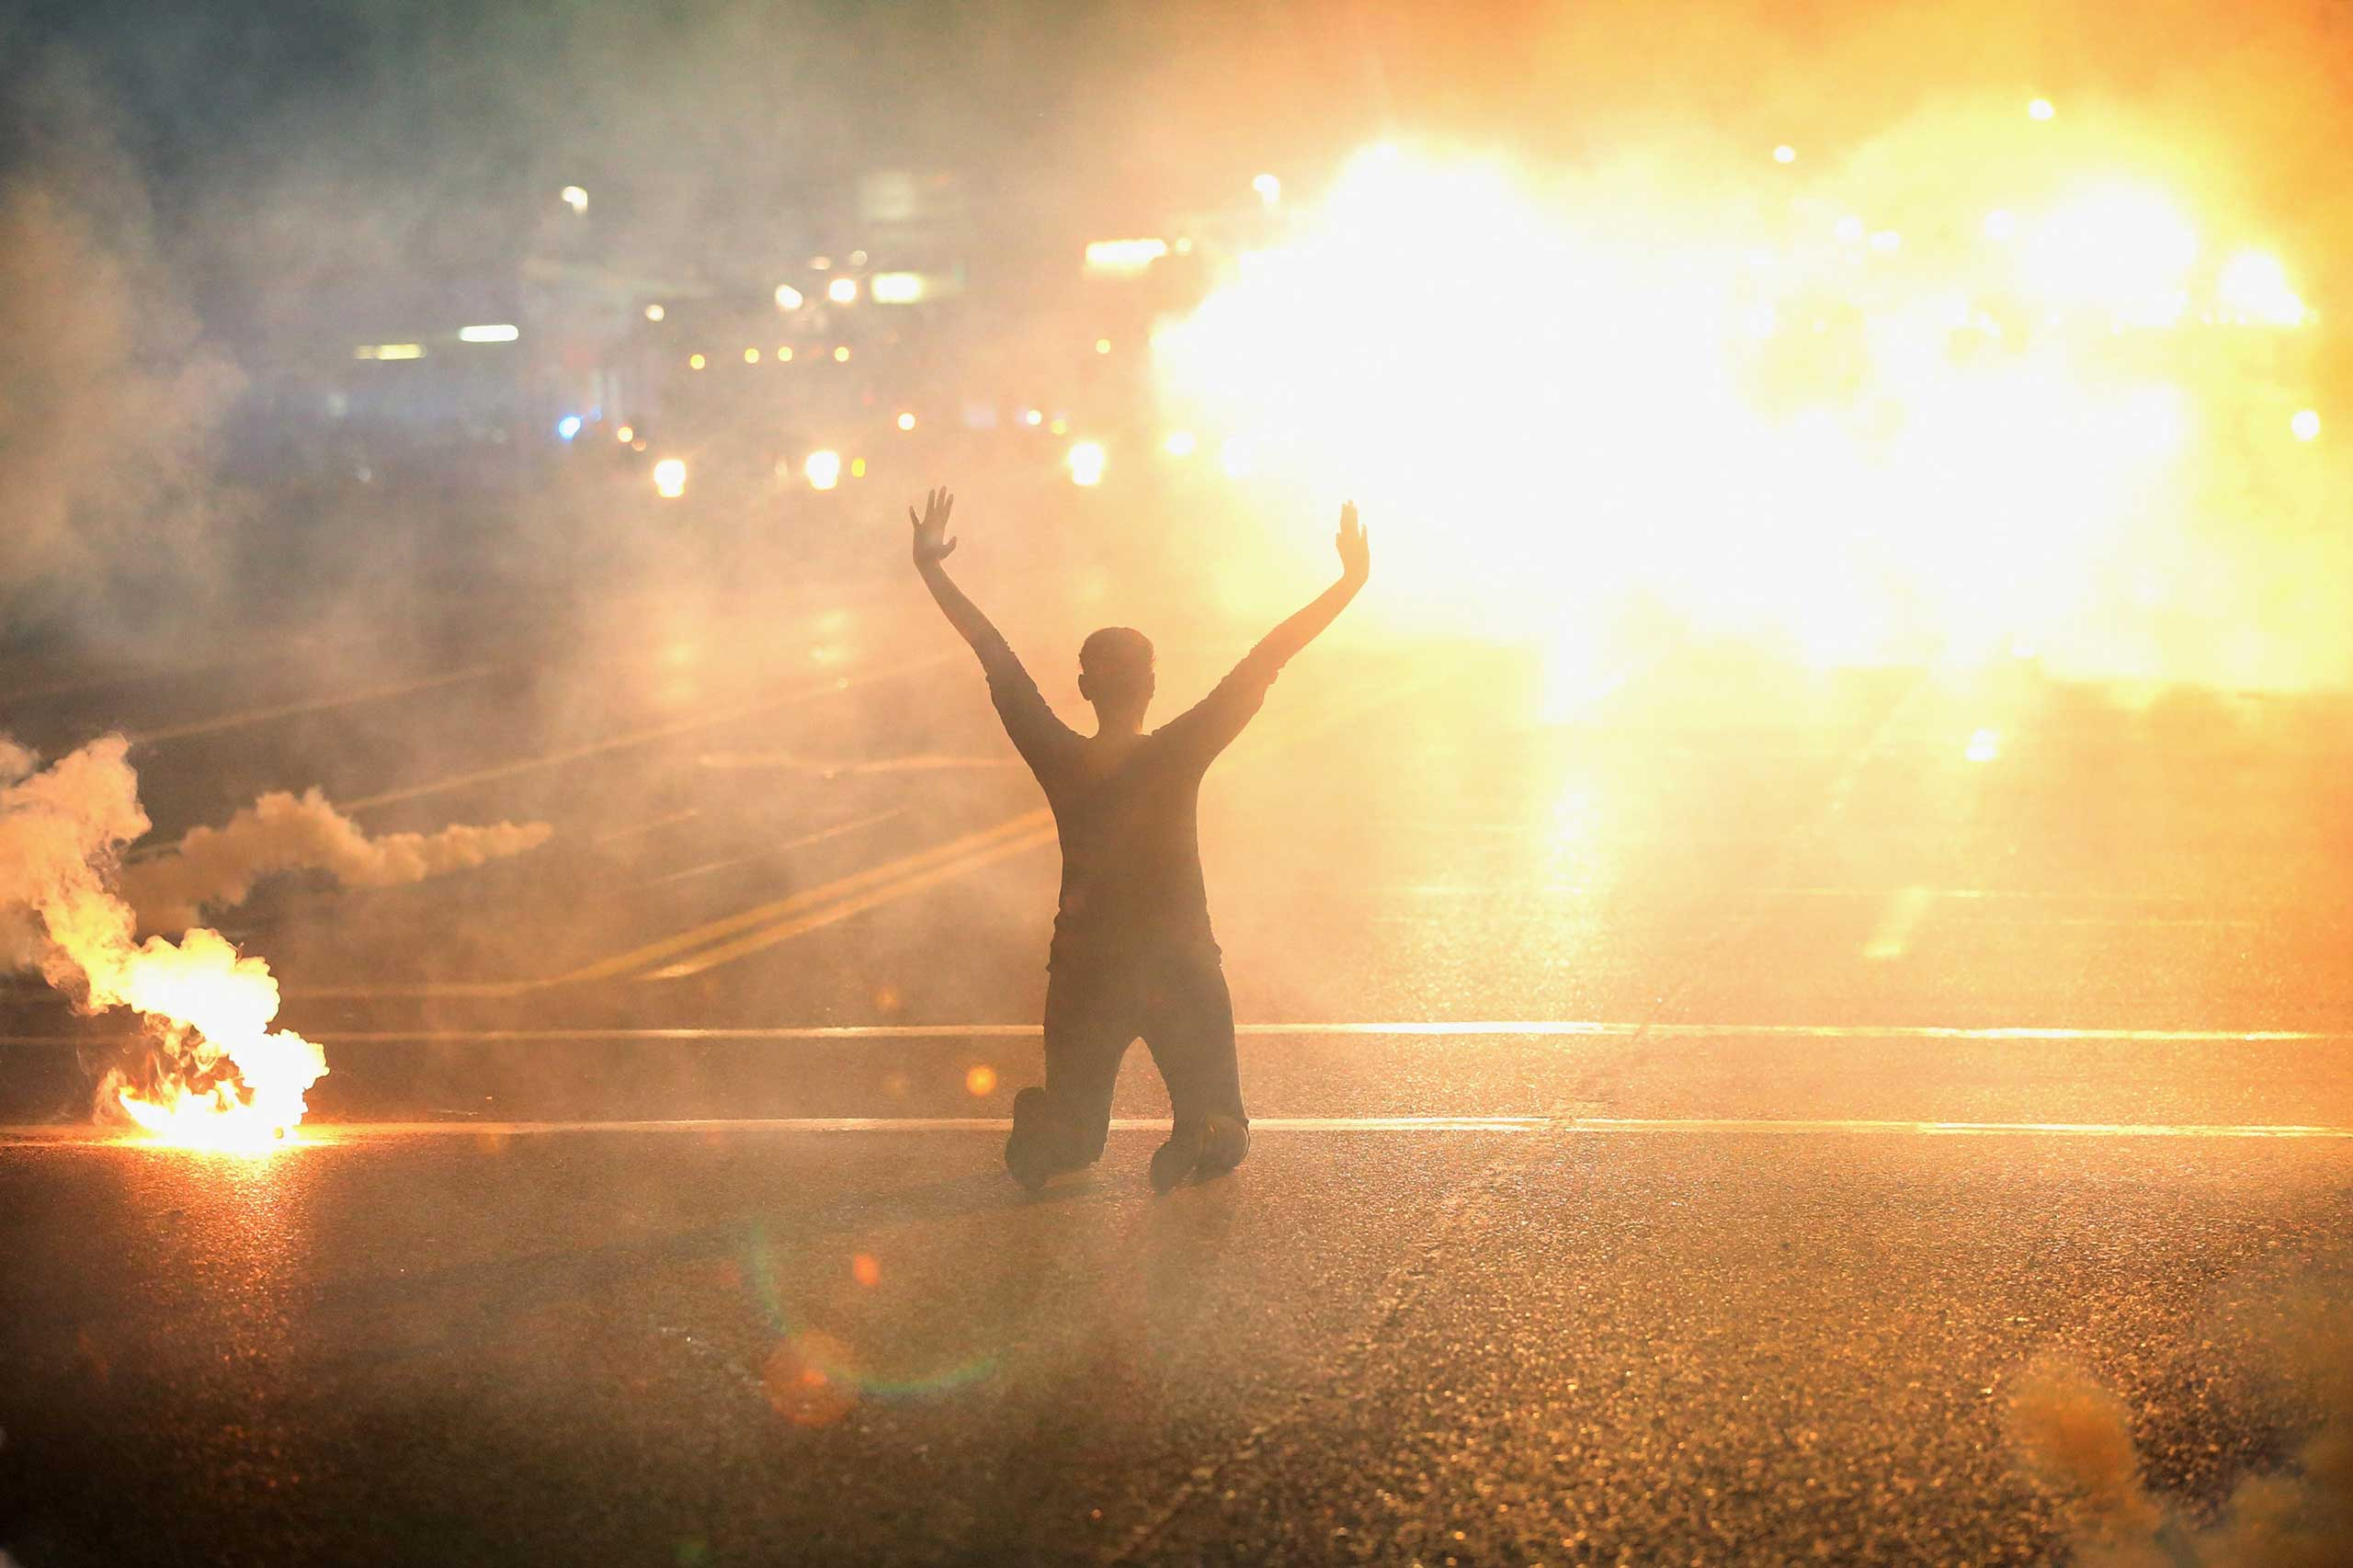 Tear gas reigns down on a woman kneeling in the street with her hands in the air after a demonstration over the killing of teenager Michael Brown by a Ferguson police officer on Aug. 17, 2014 in Ferguson, Missouri.